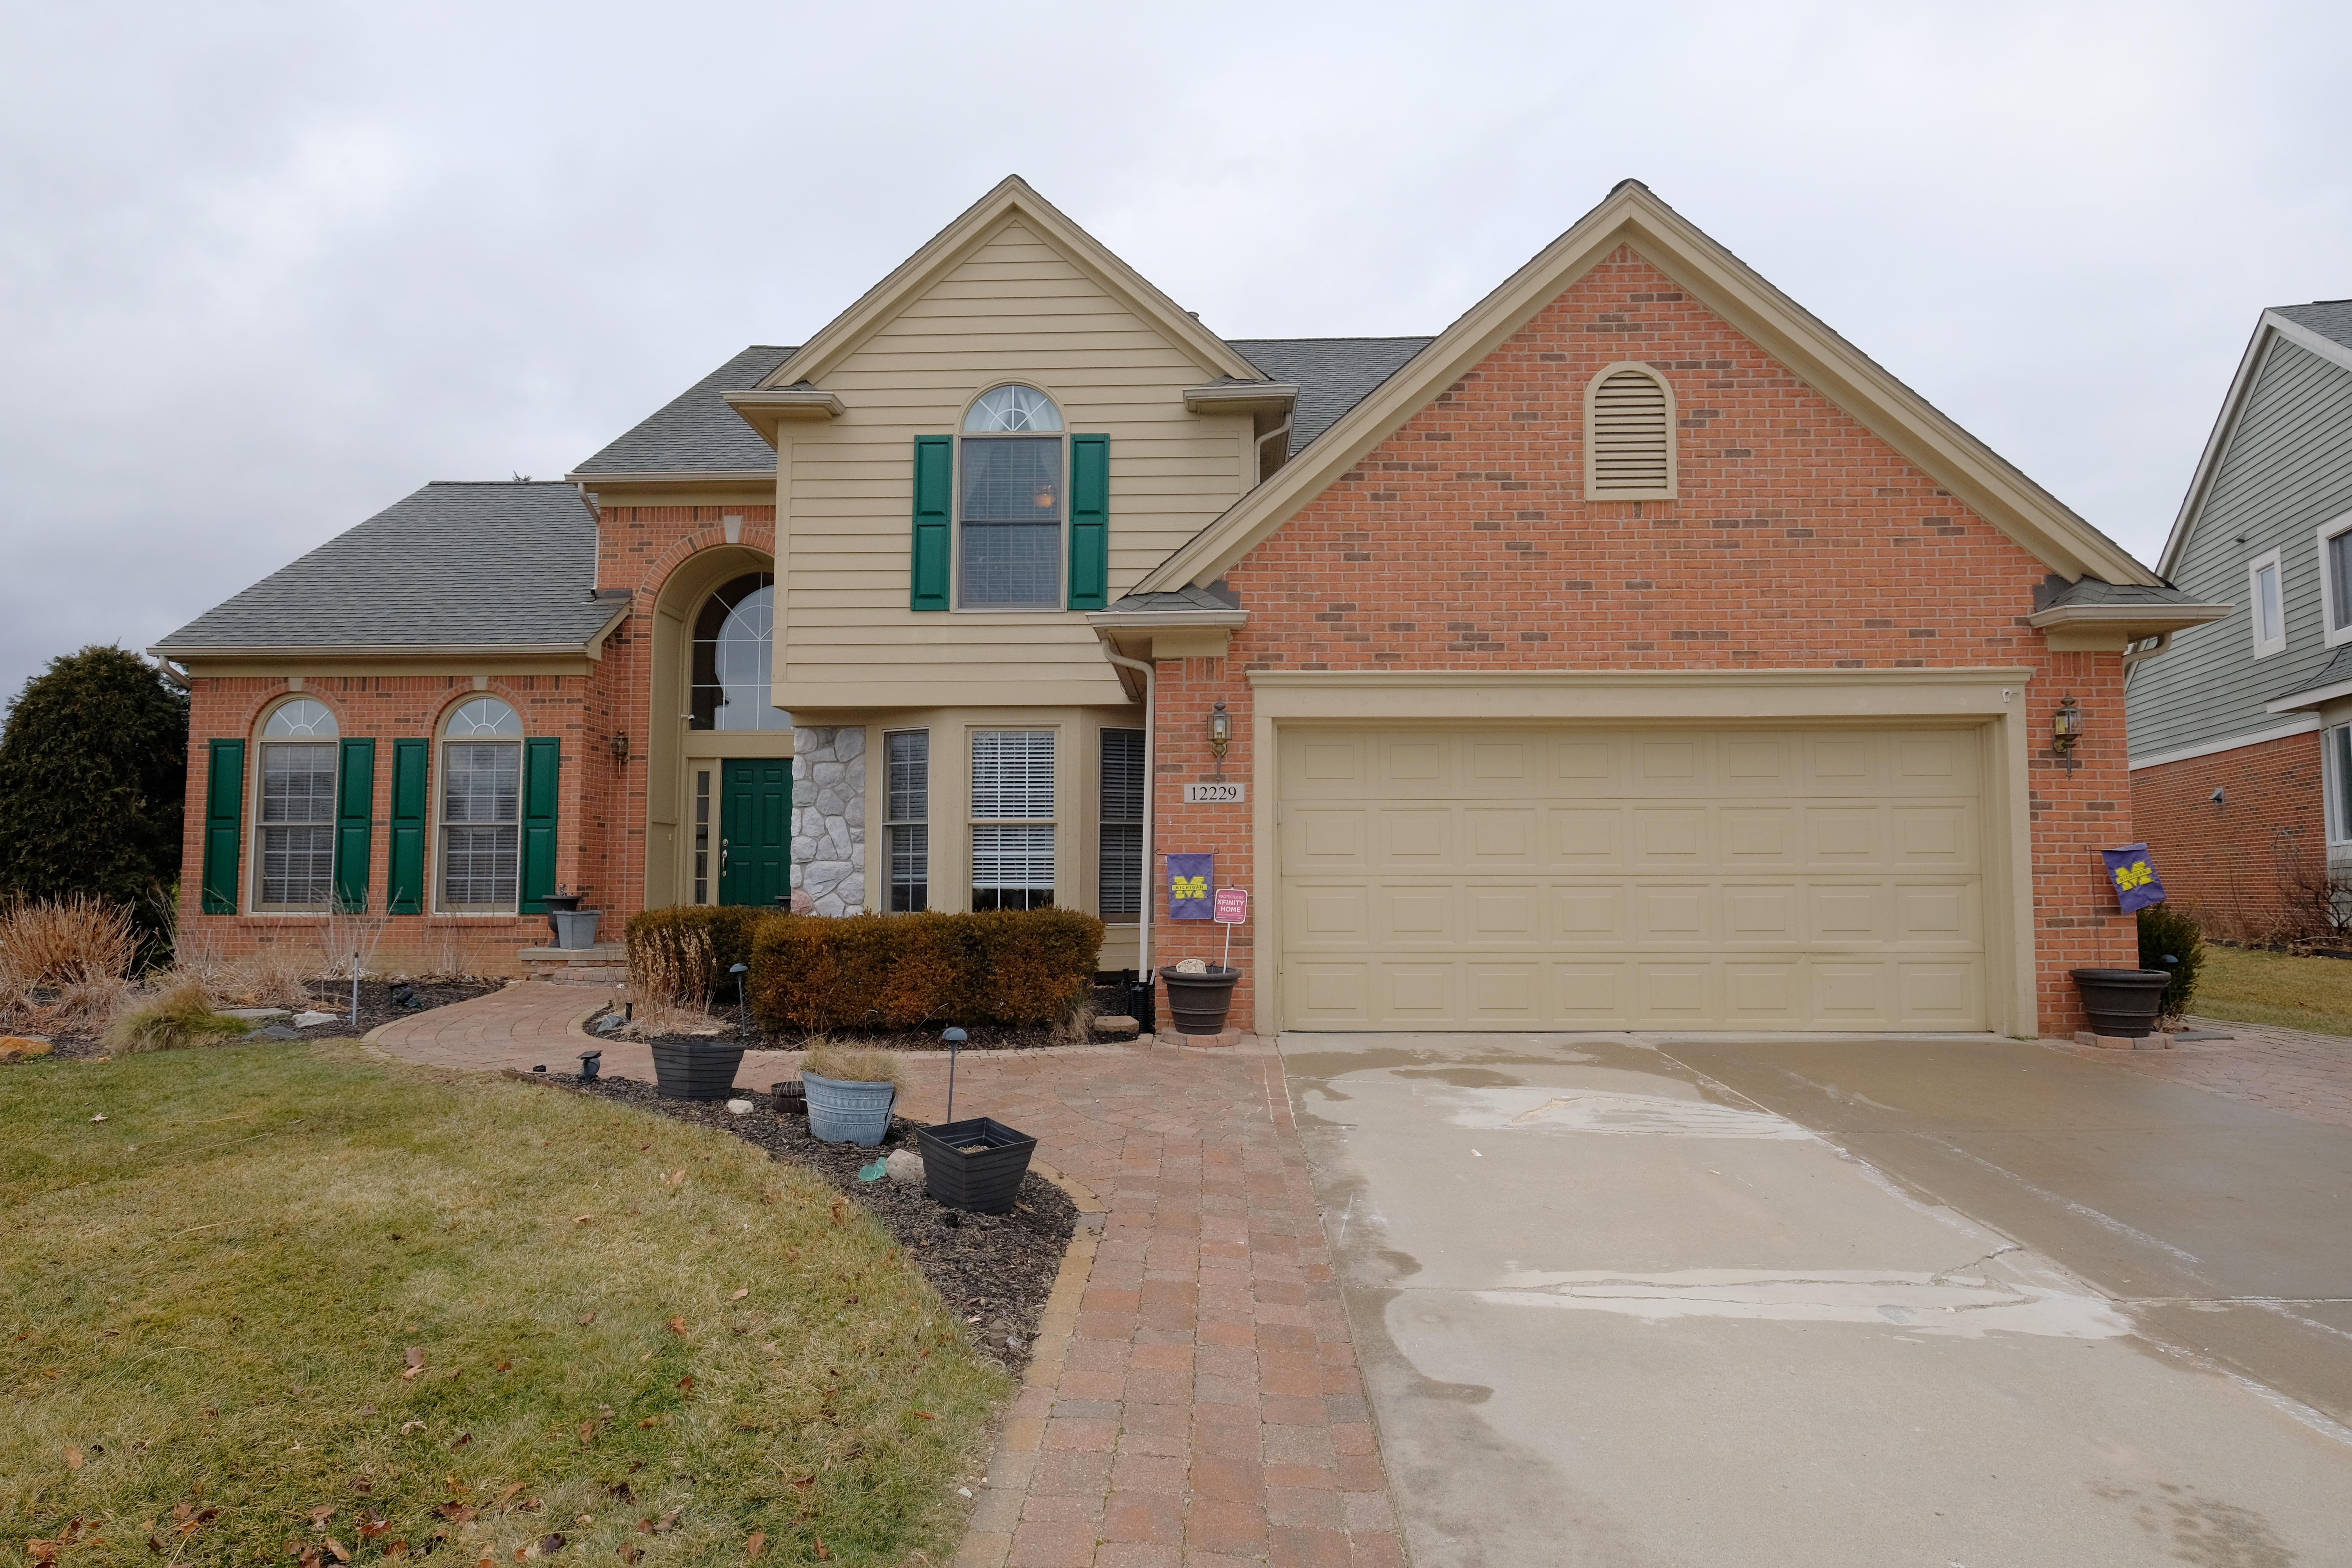 12229 Chandler Drive, Plymouth Twp